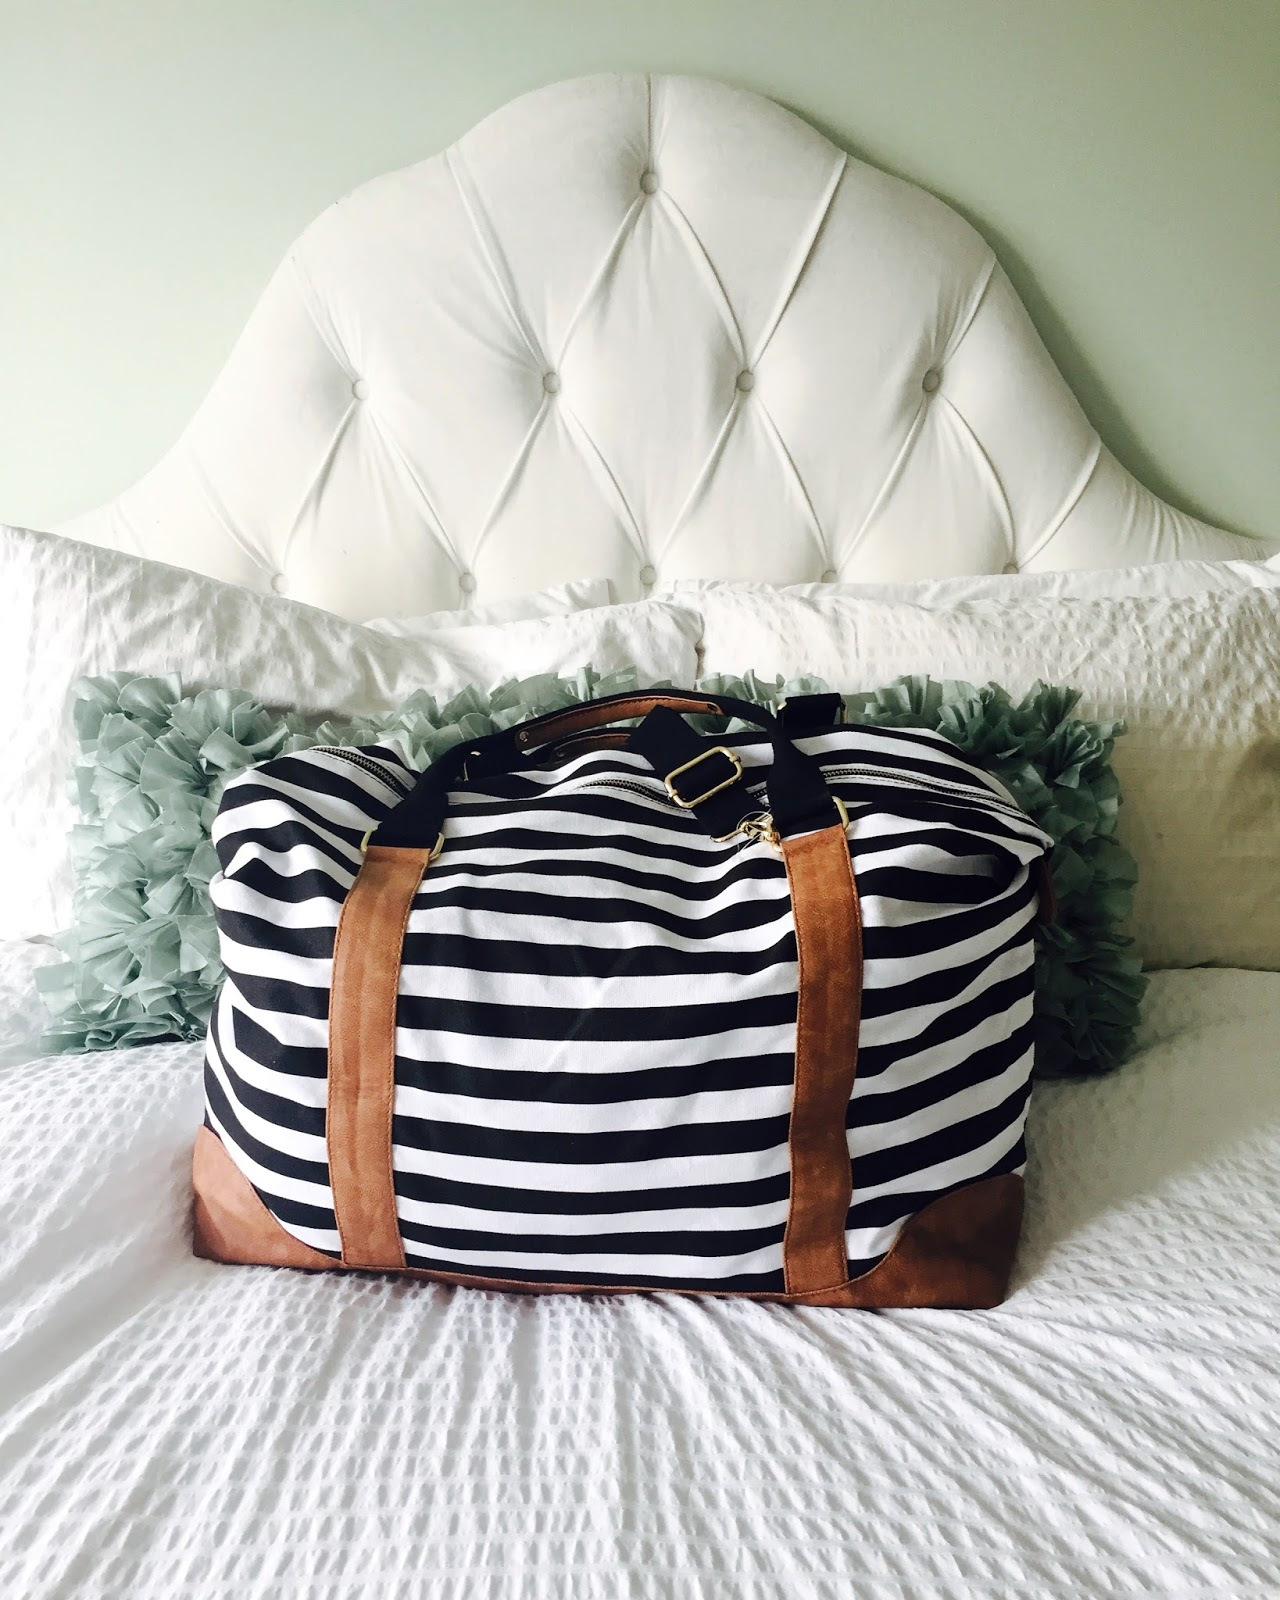 FORTUNATE HOUSE: Friday Favourite: Striped Weekender Bag